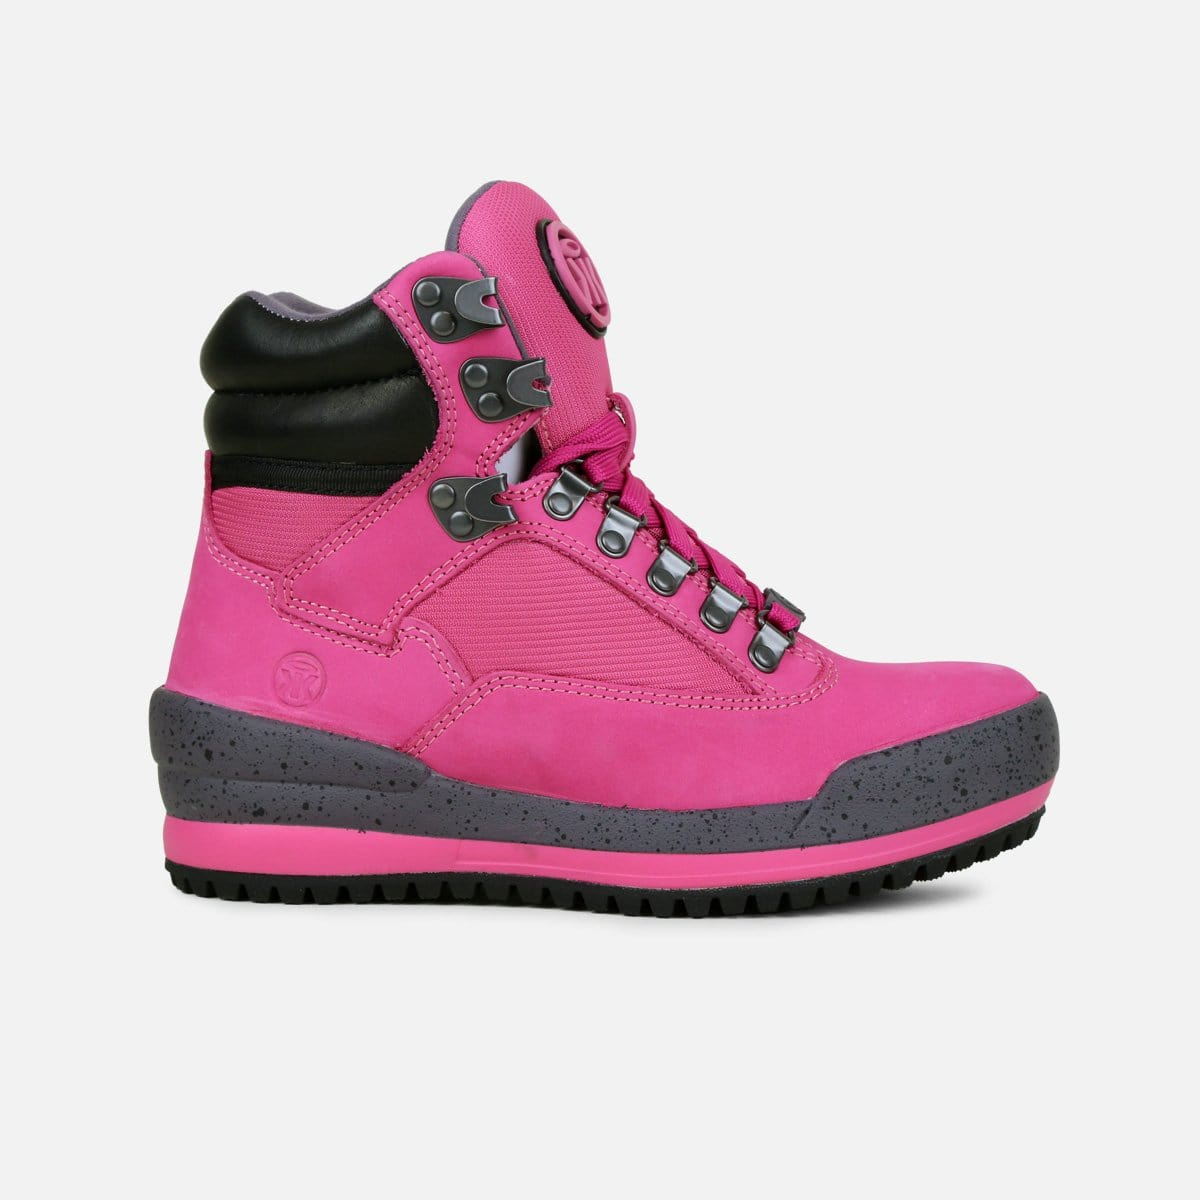 Summiko Swagg Grade-School Girls' Boot (Pink/Black)